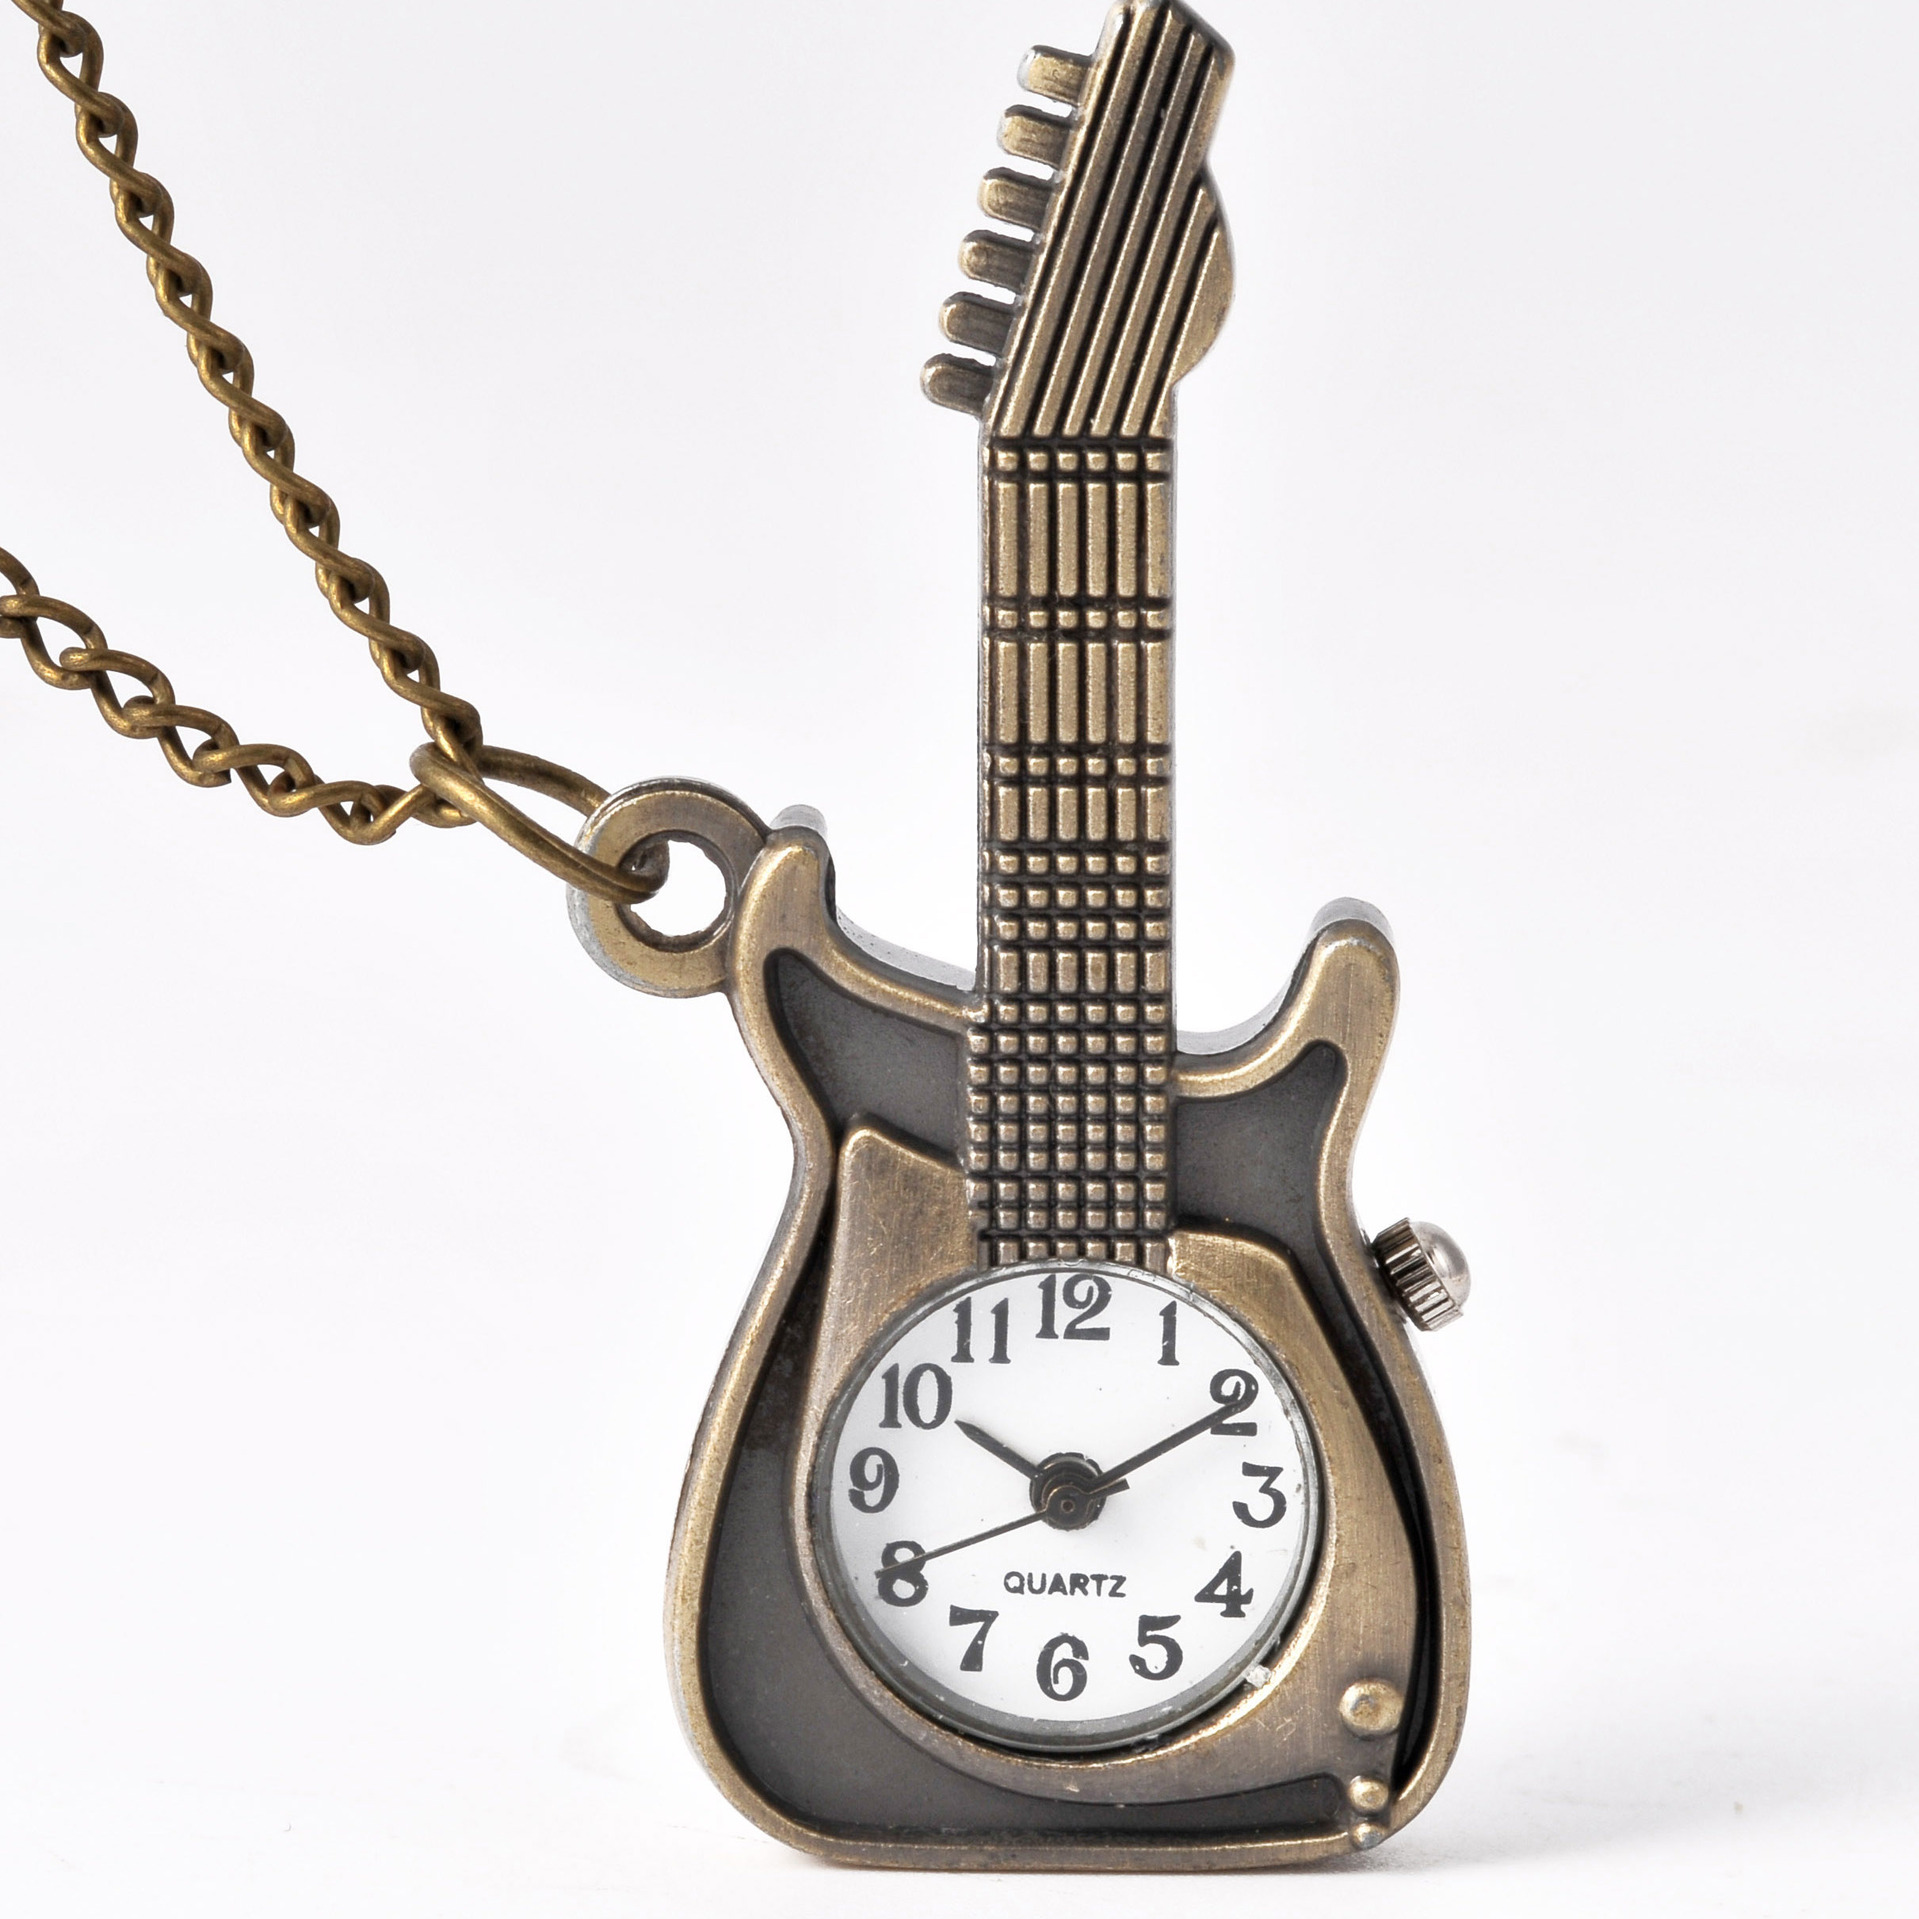 Guitar Pocket Watch Jewelry Small Size Cute Guitar Shape Pocket Watch With Chain Birthday Gift For Children